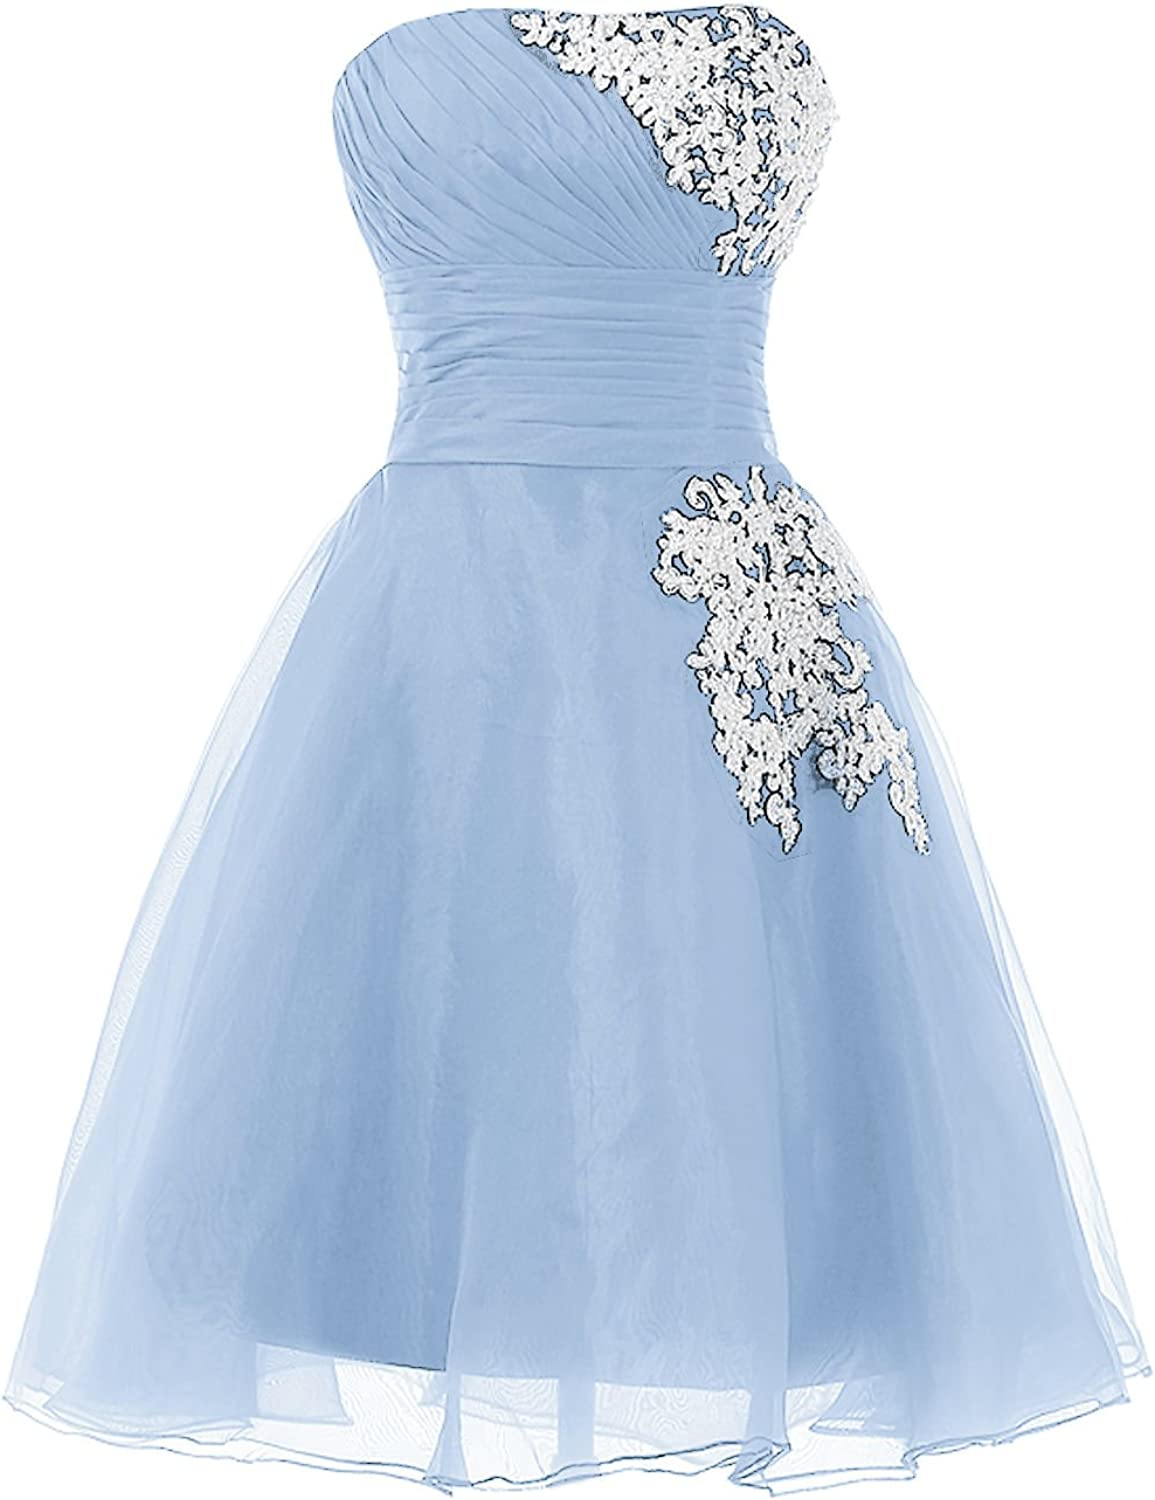 QY Bride Short Pageant Prom Dresses Organza Lace Homecoming Gowns